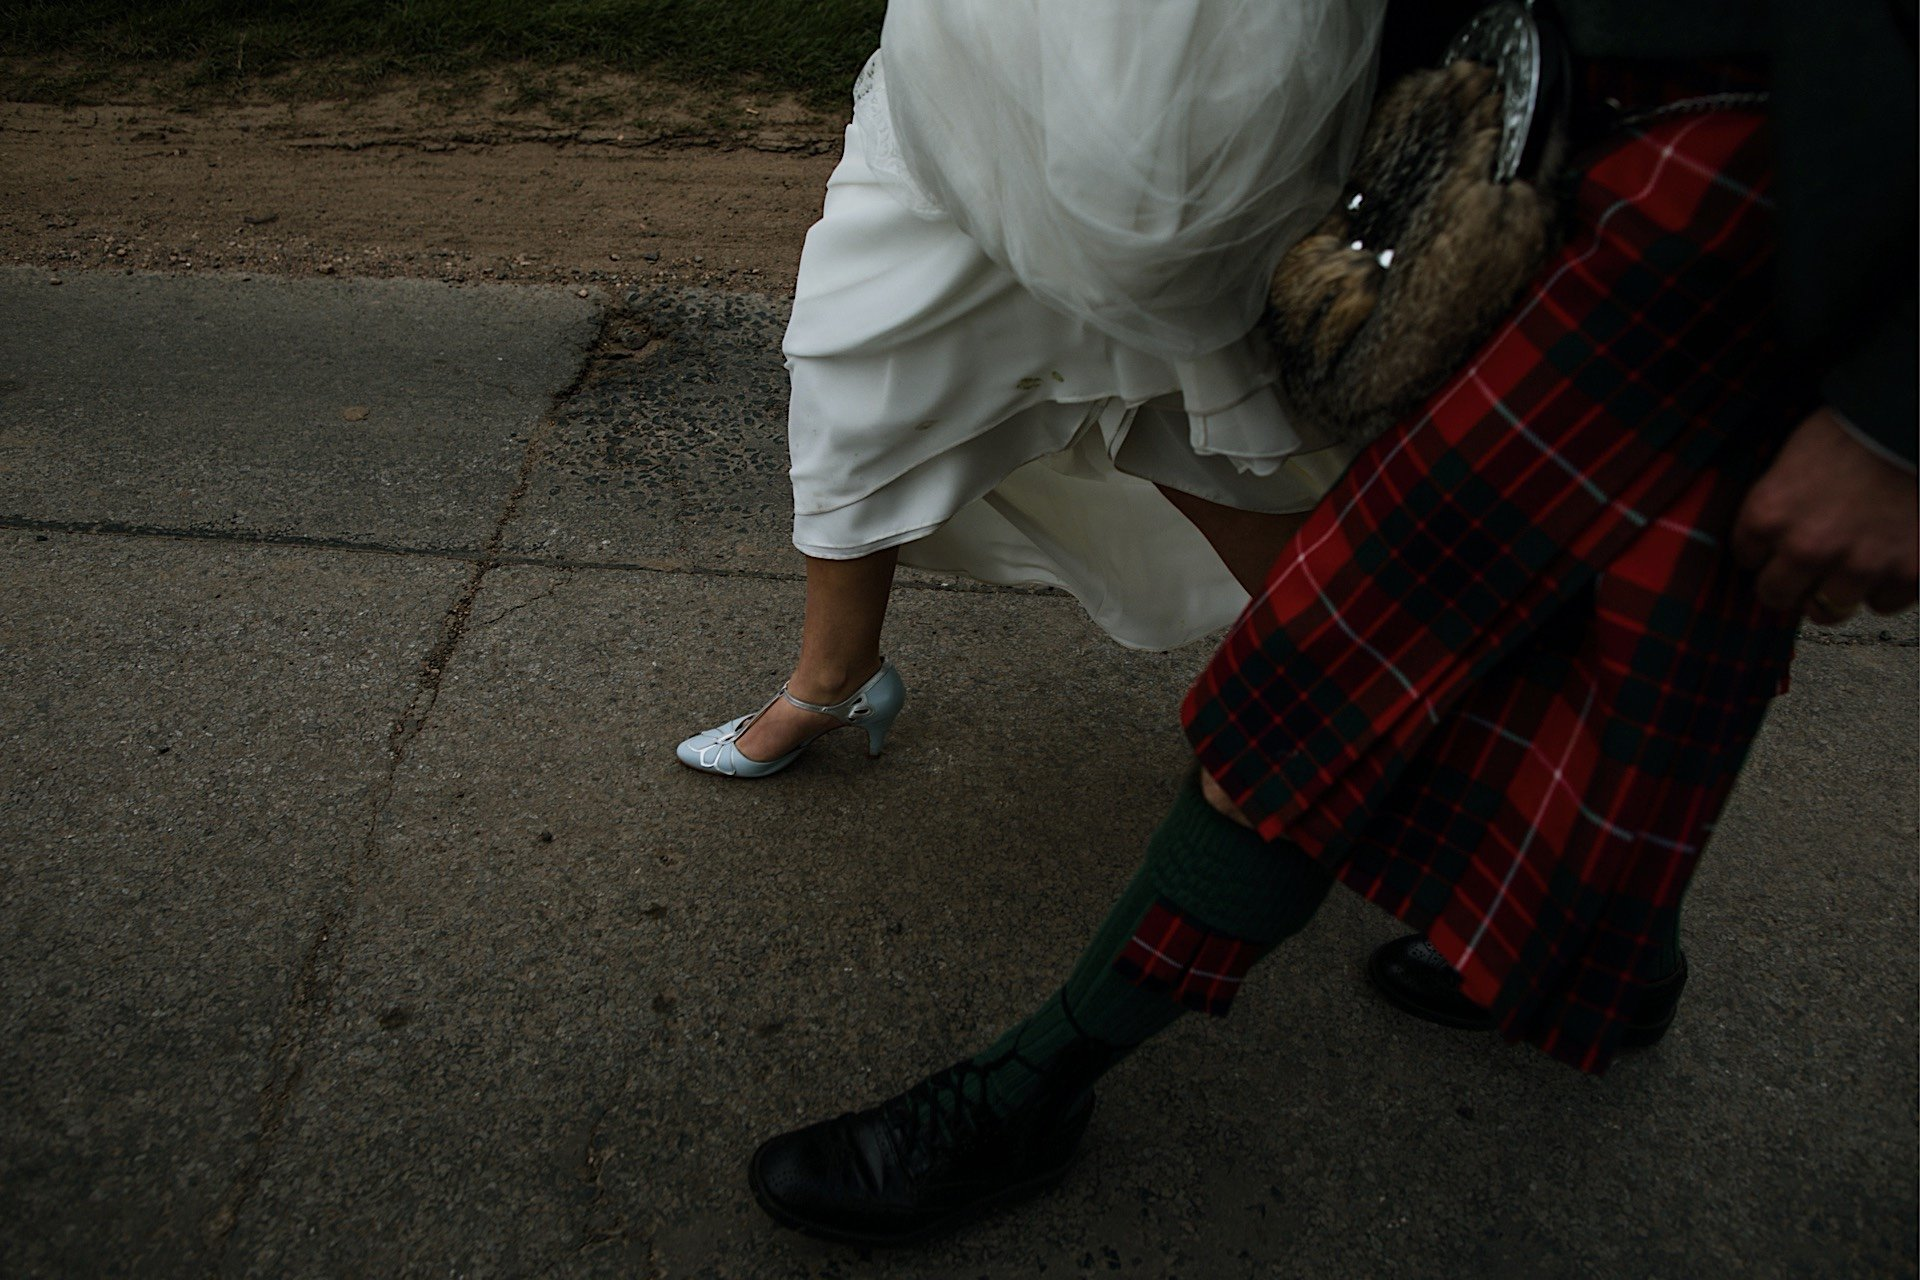 bride taken showing dress looking grooms blue shoes image down brides and Red Walking groom kilt